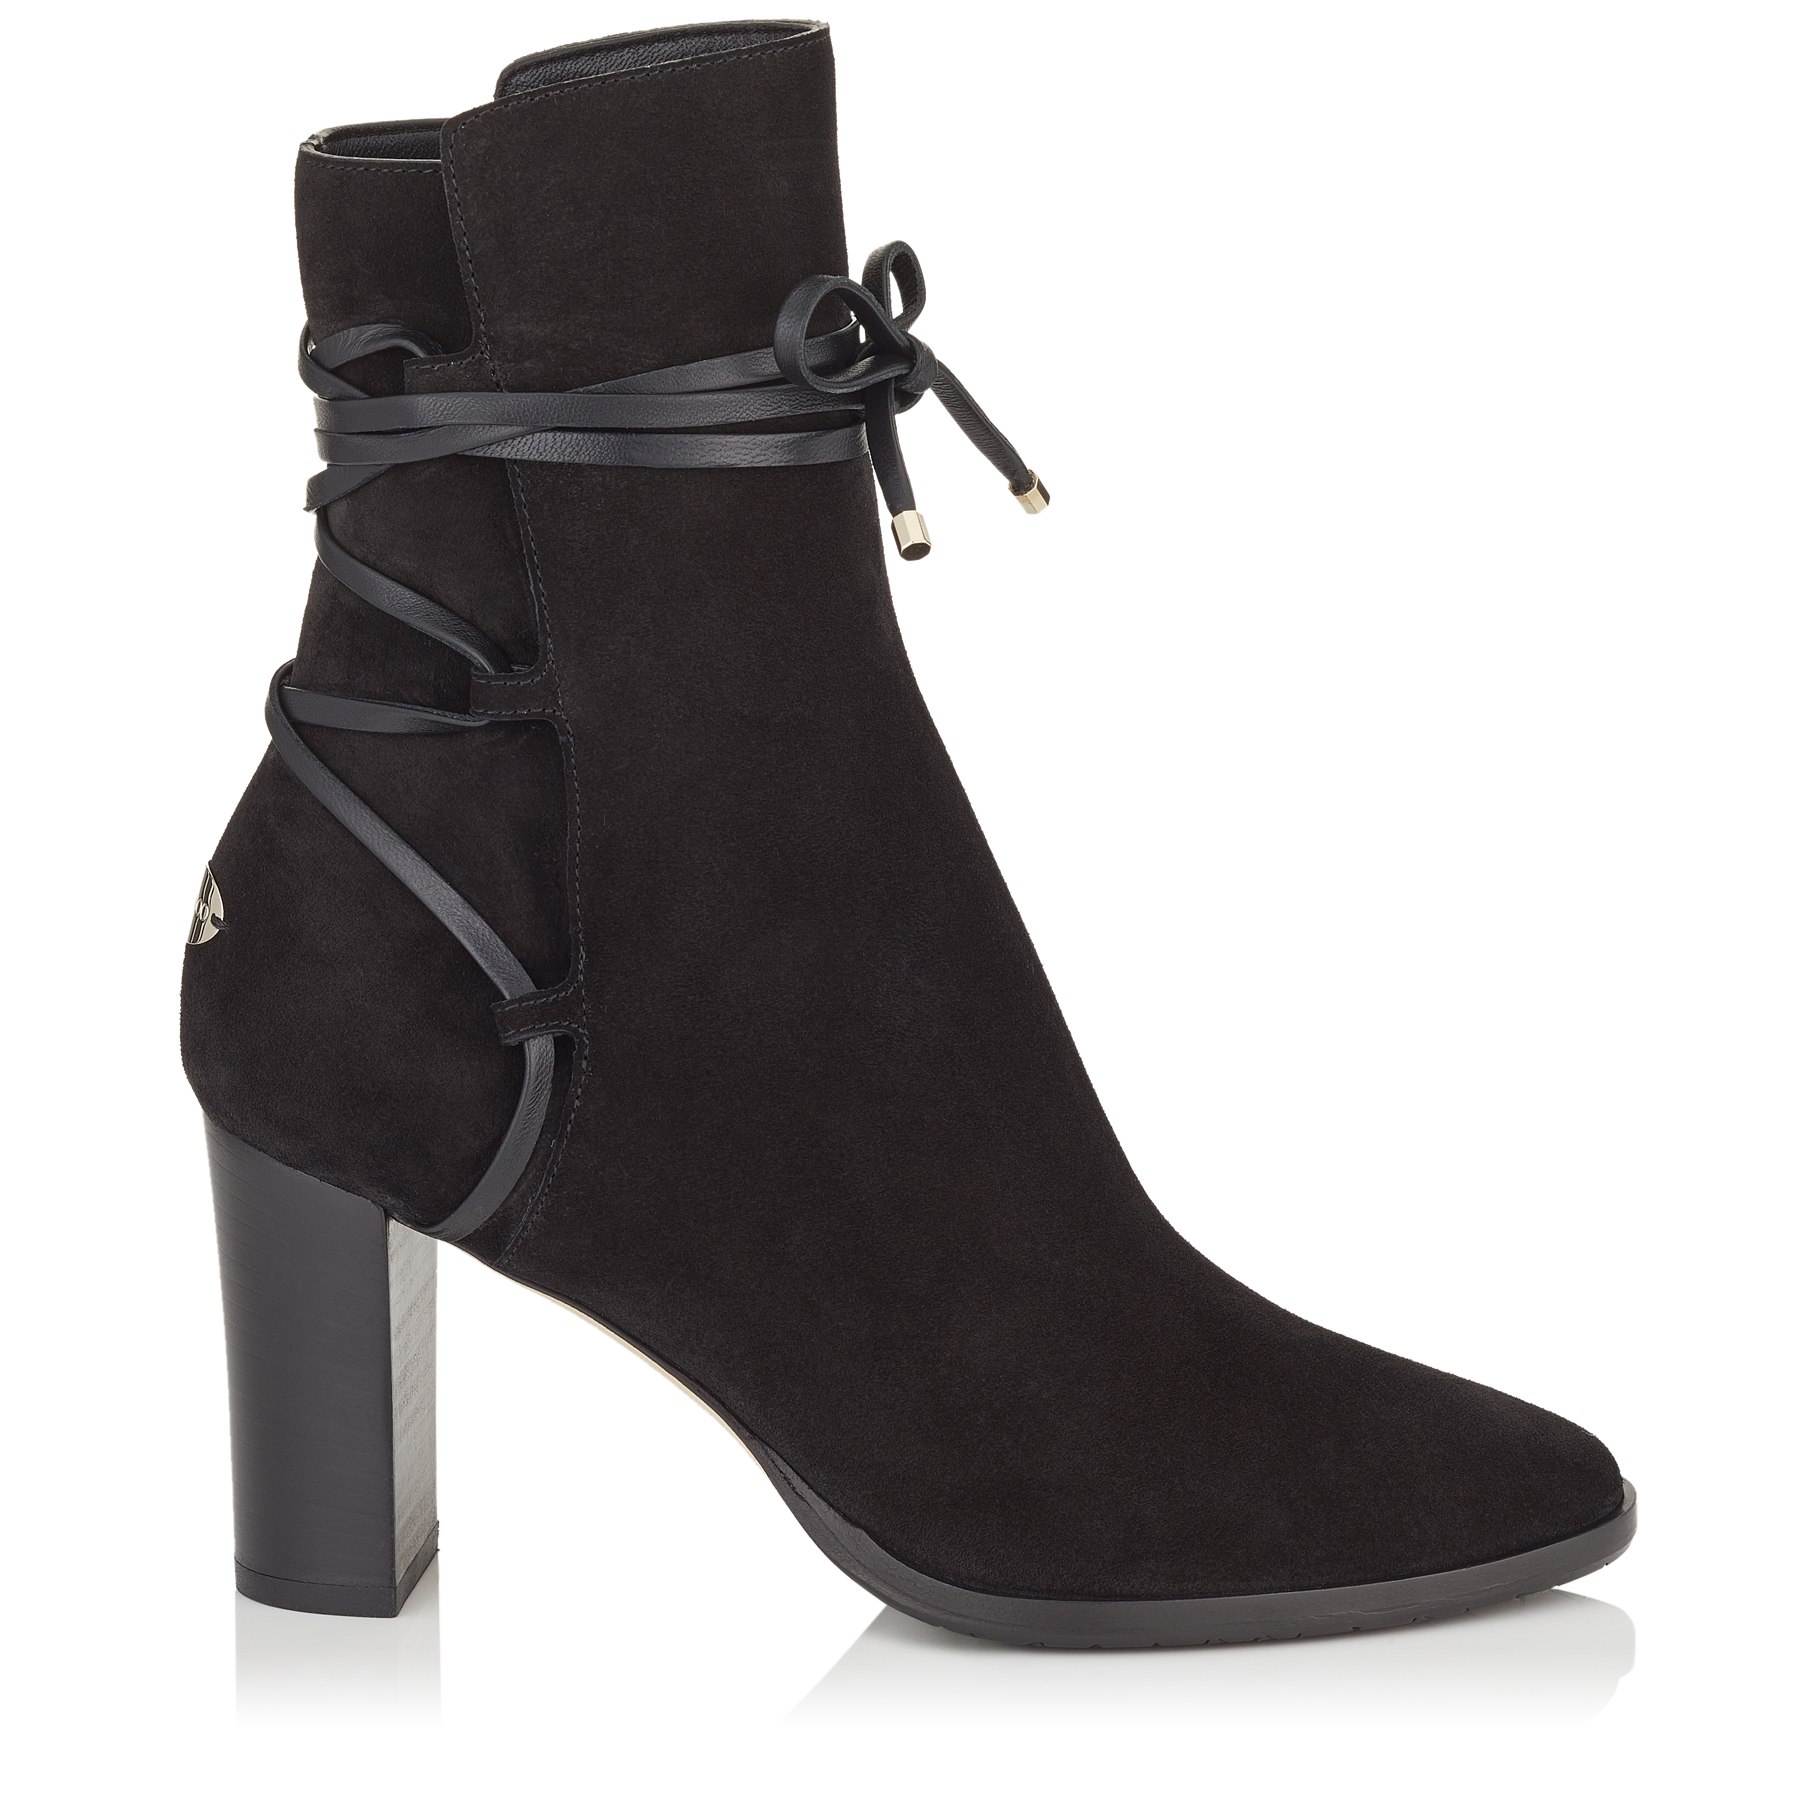 HAMPTON 80 Black Suede and Leather Boots by Jimmy Choo